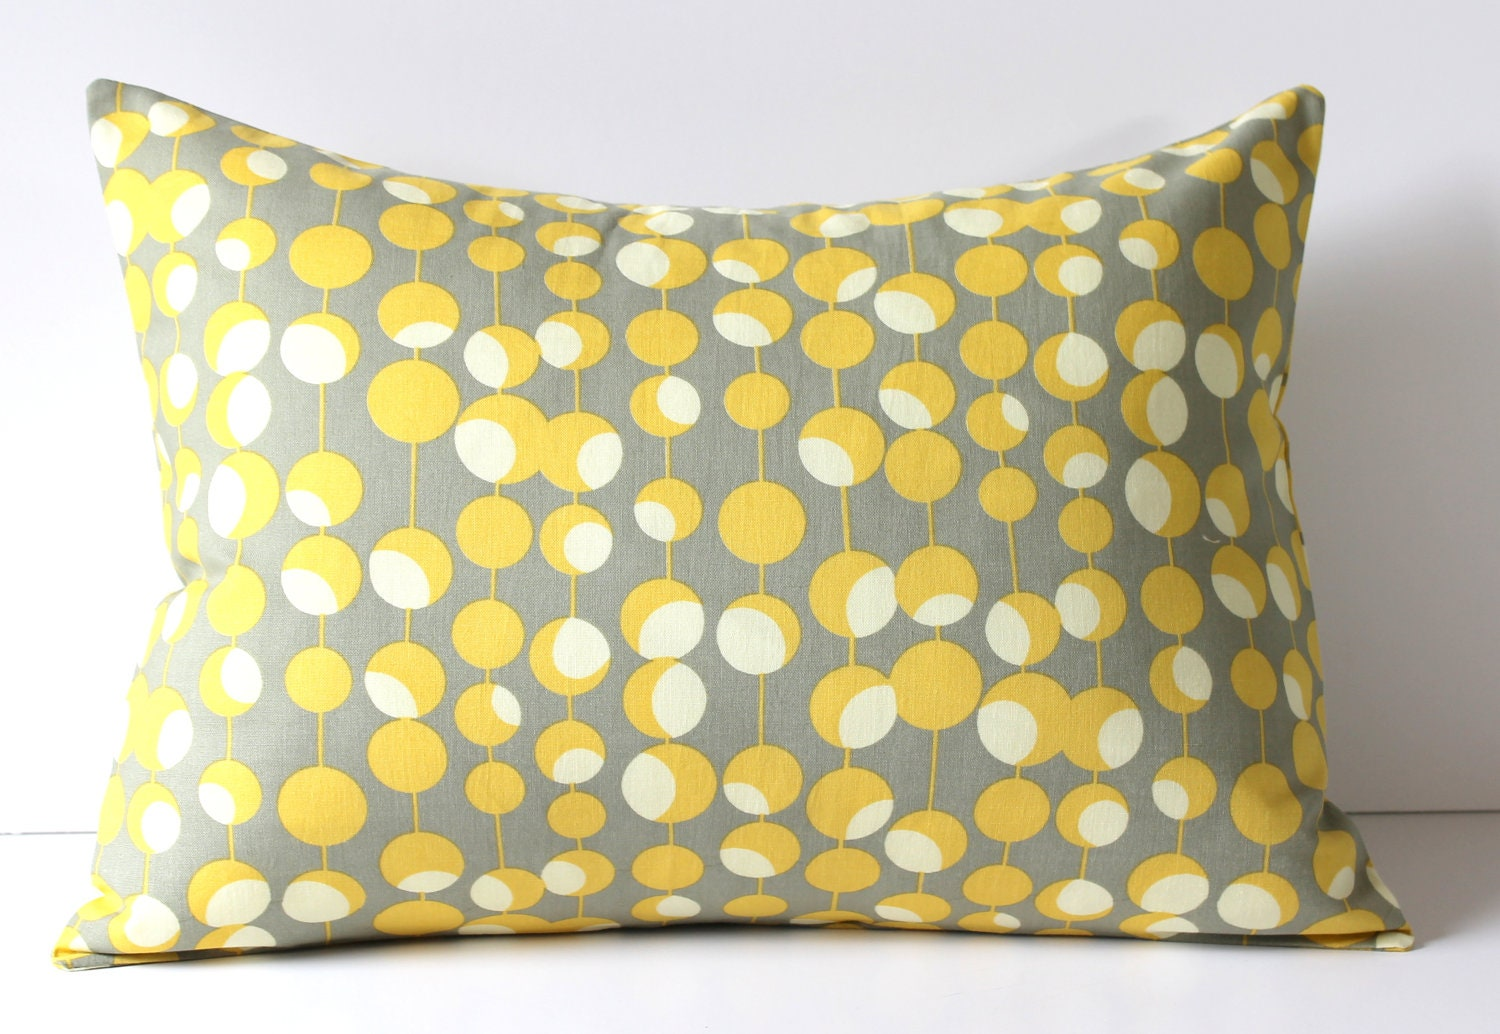 Mustard Throw Pillow Covers : Decorative Pillow Cover Gray & Mustard Yellow Martini Dots